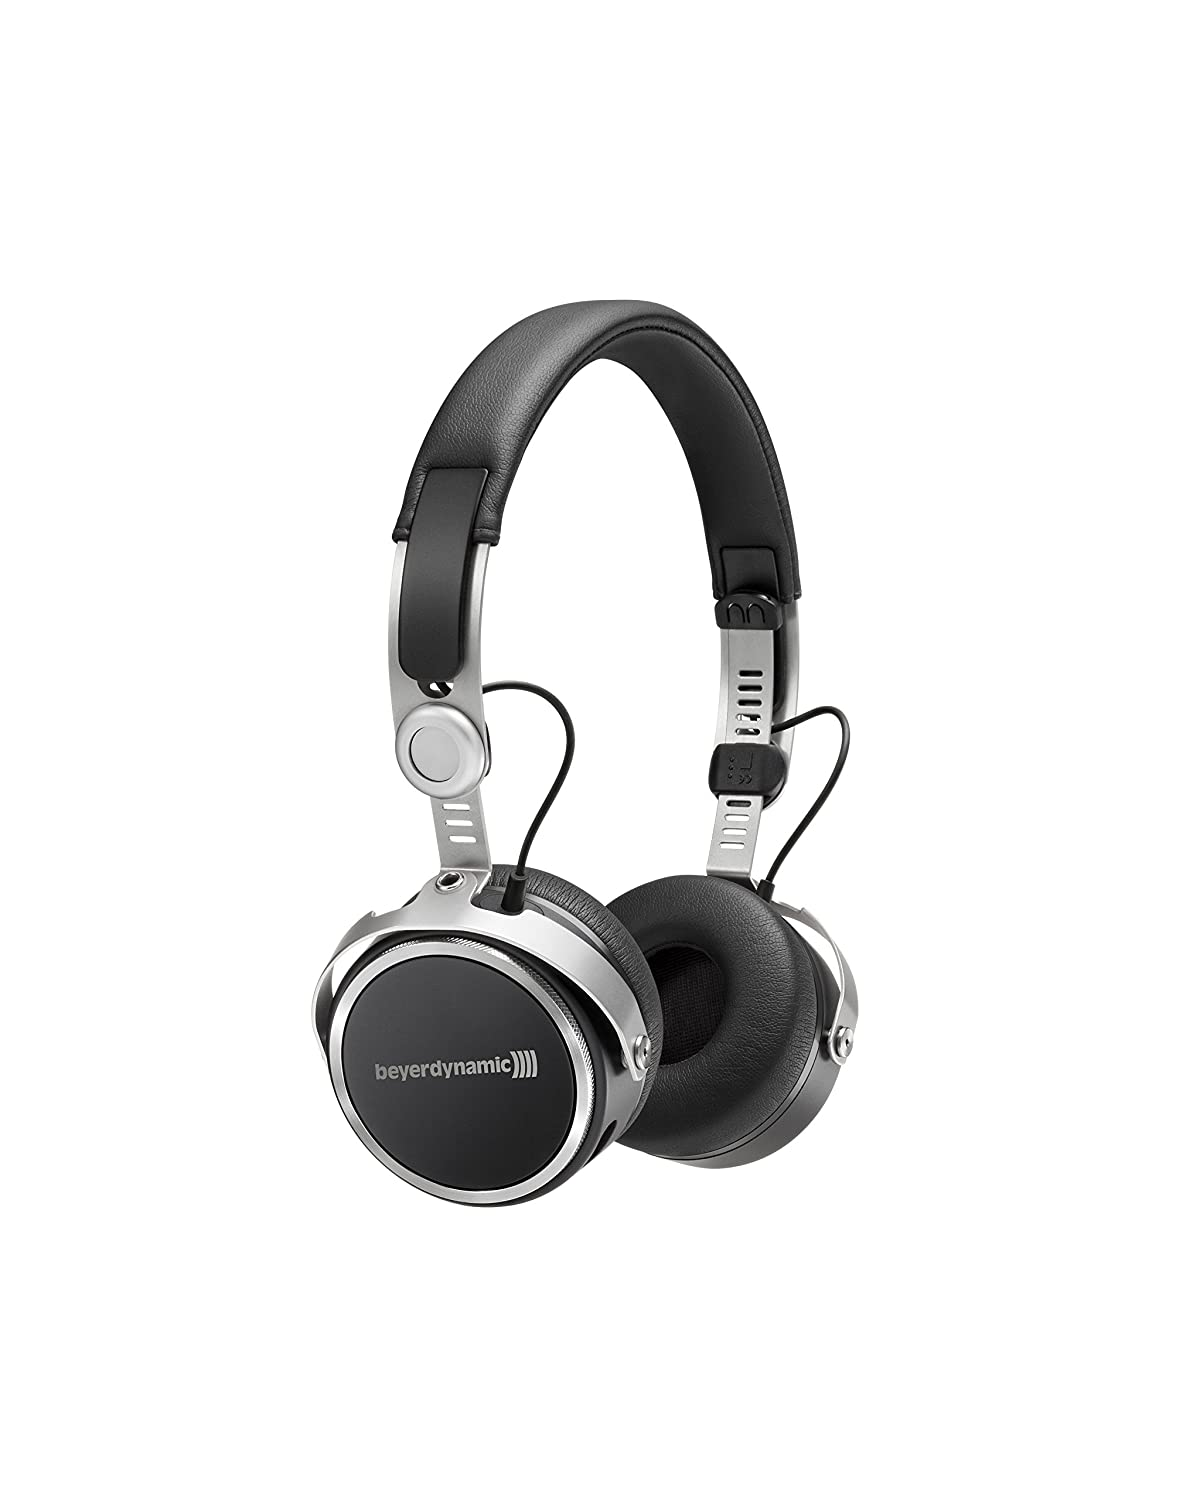 Beyerdynamic Aventho Wireless Headphones (Black)